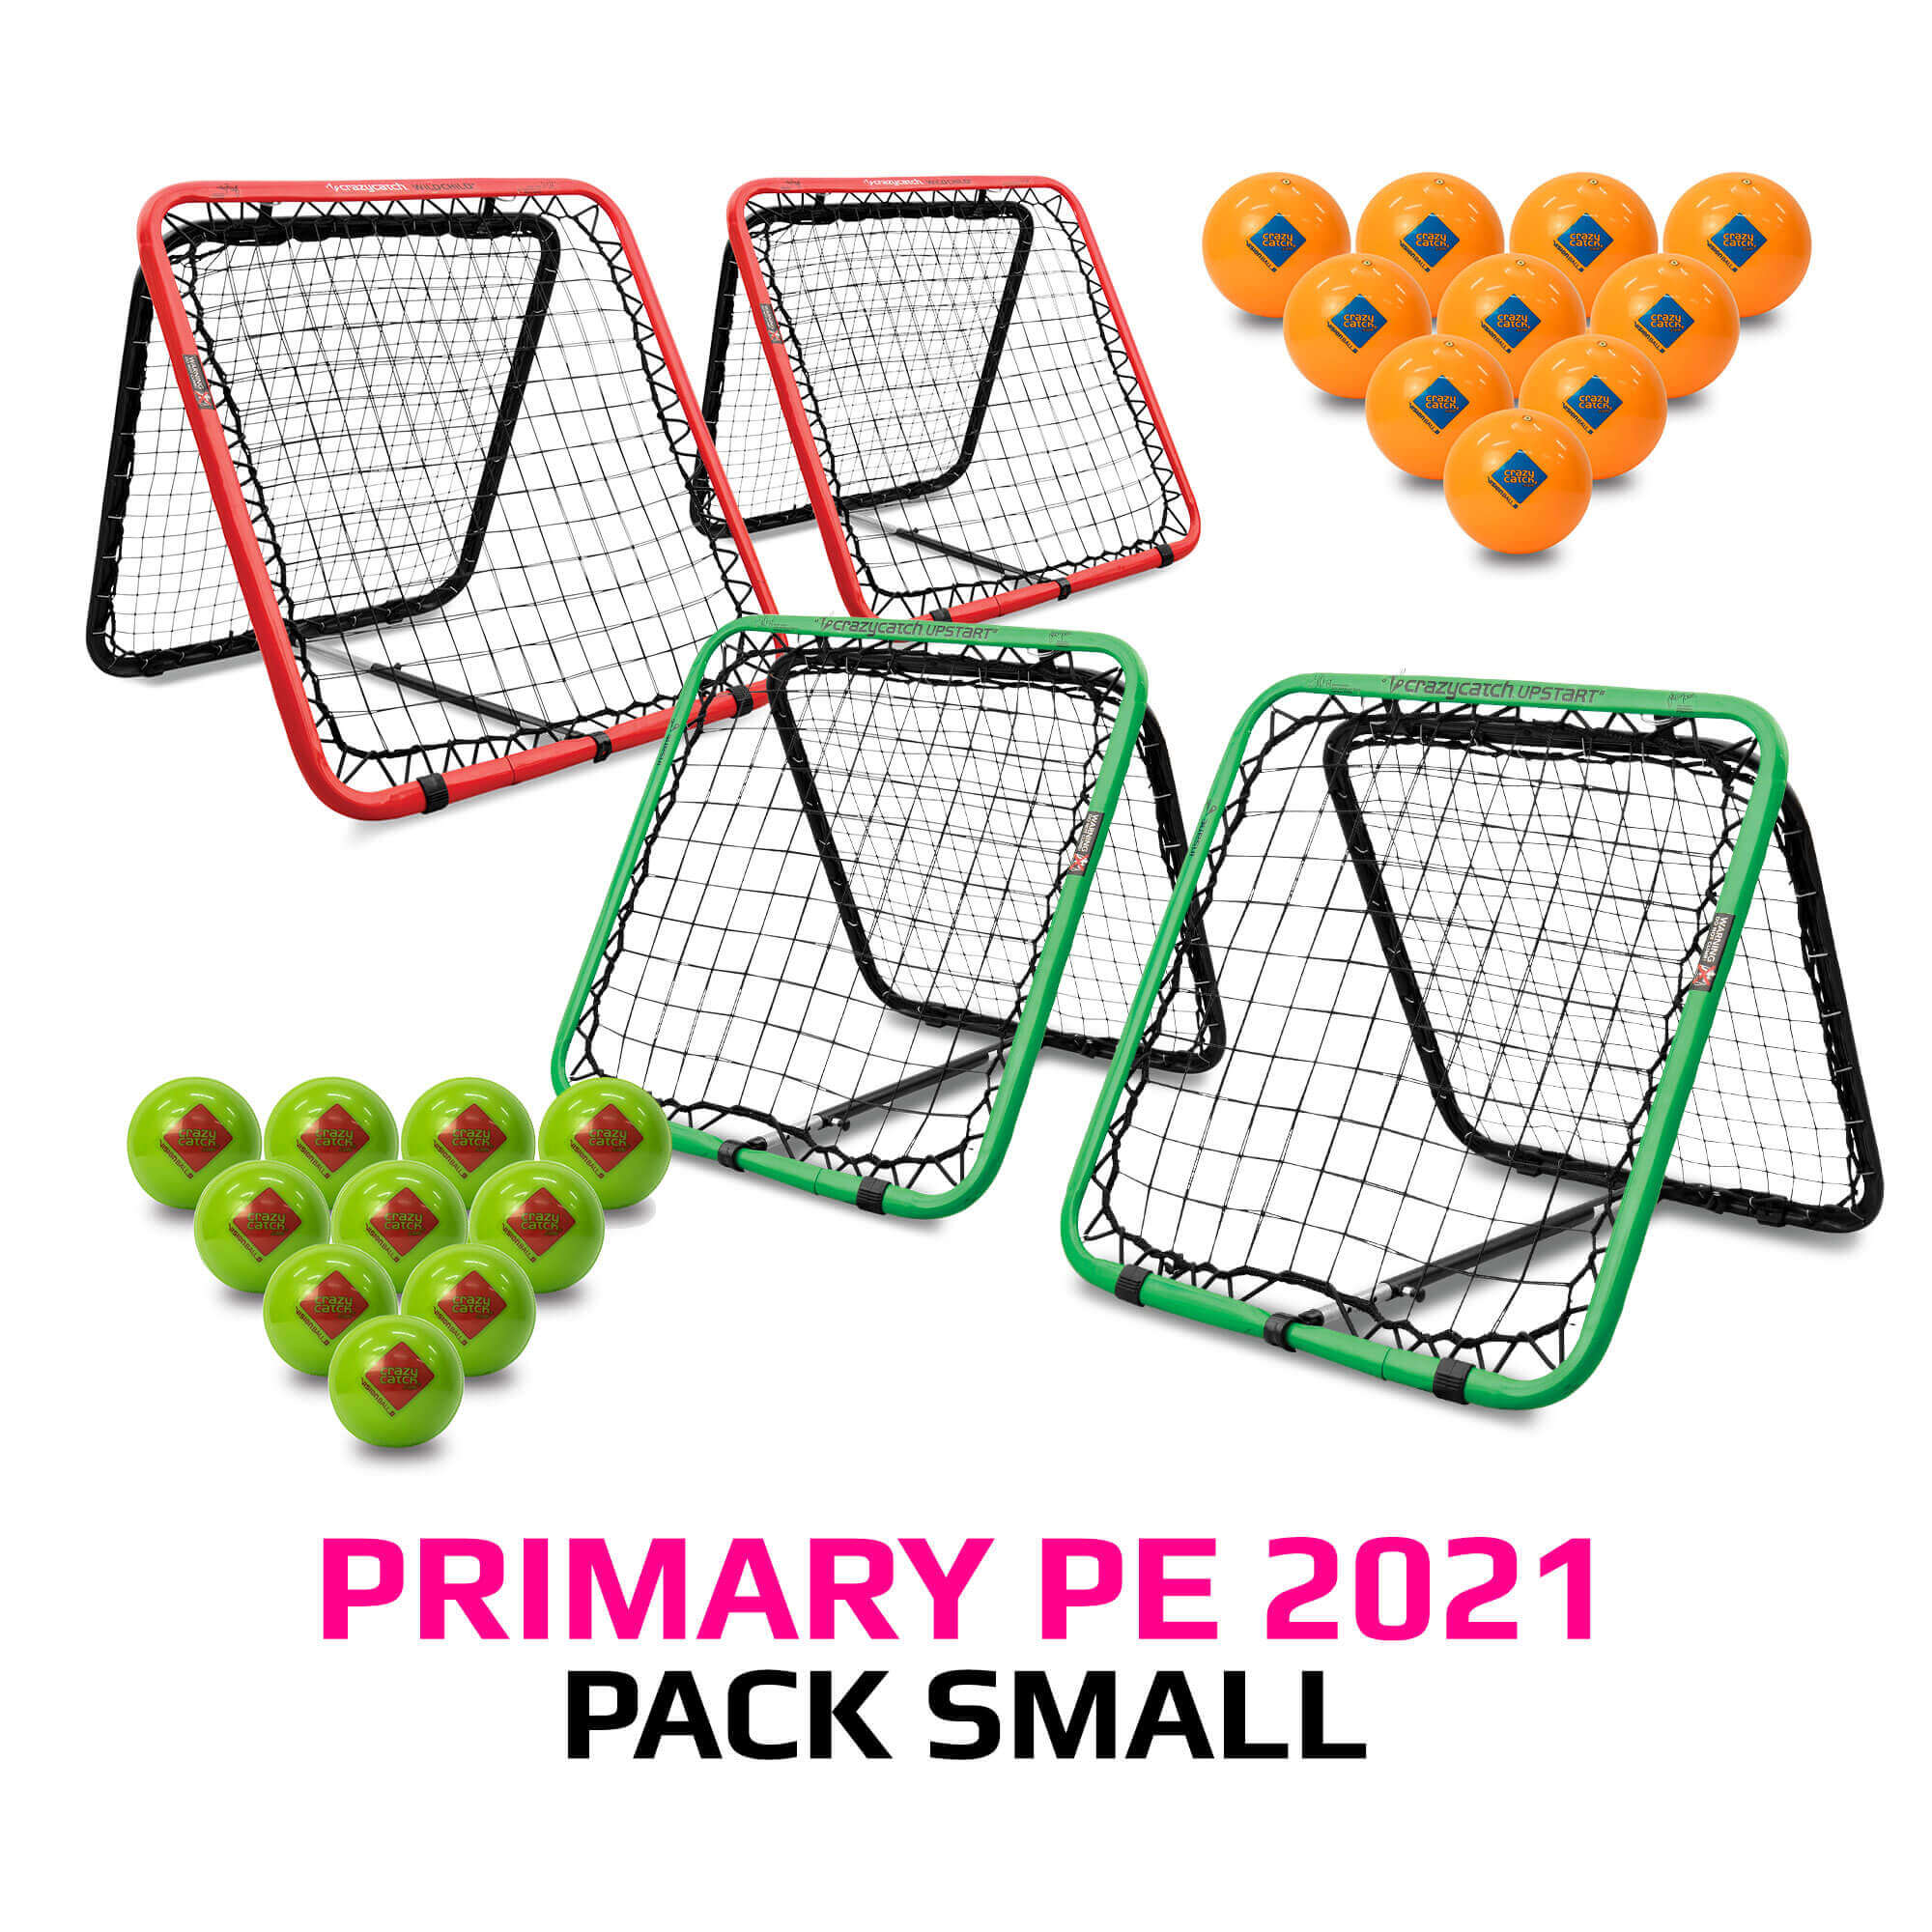 Primary PE 2021 Pack Small